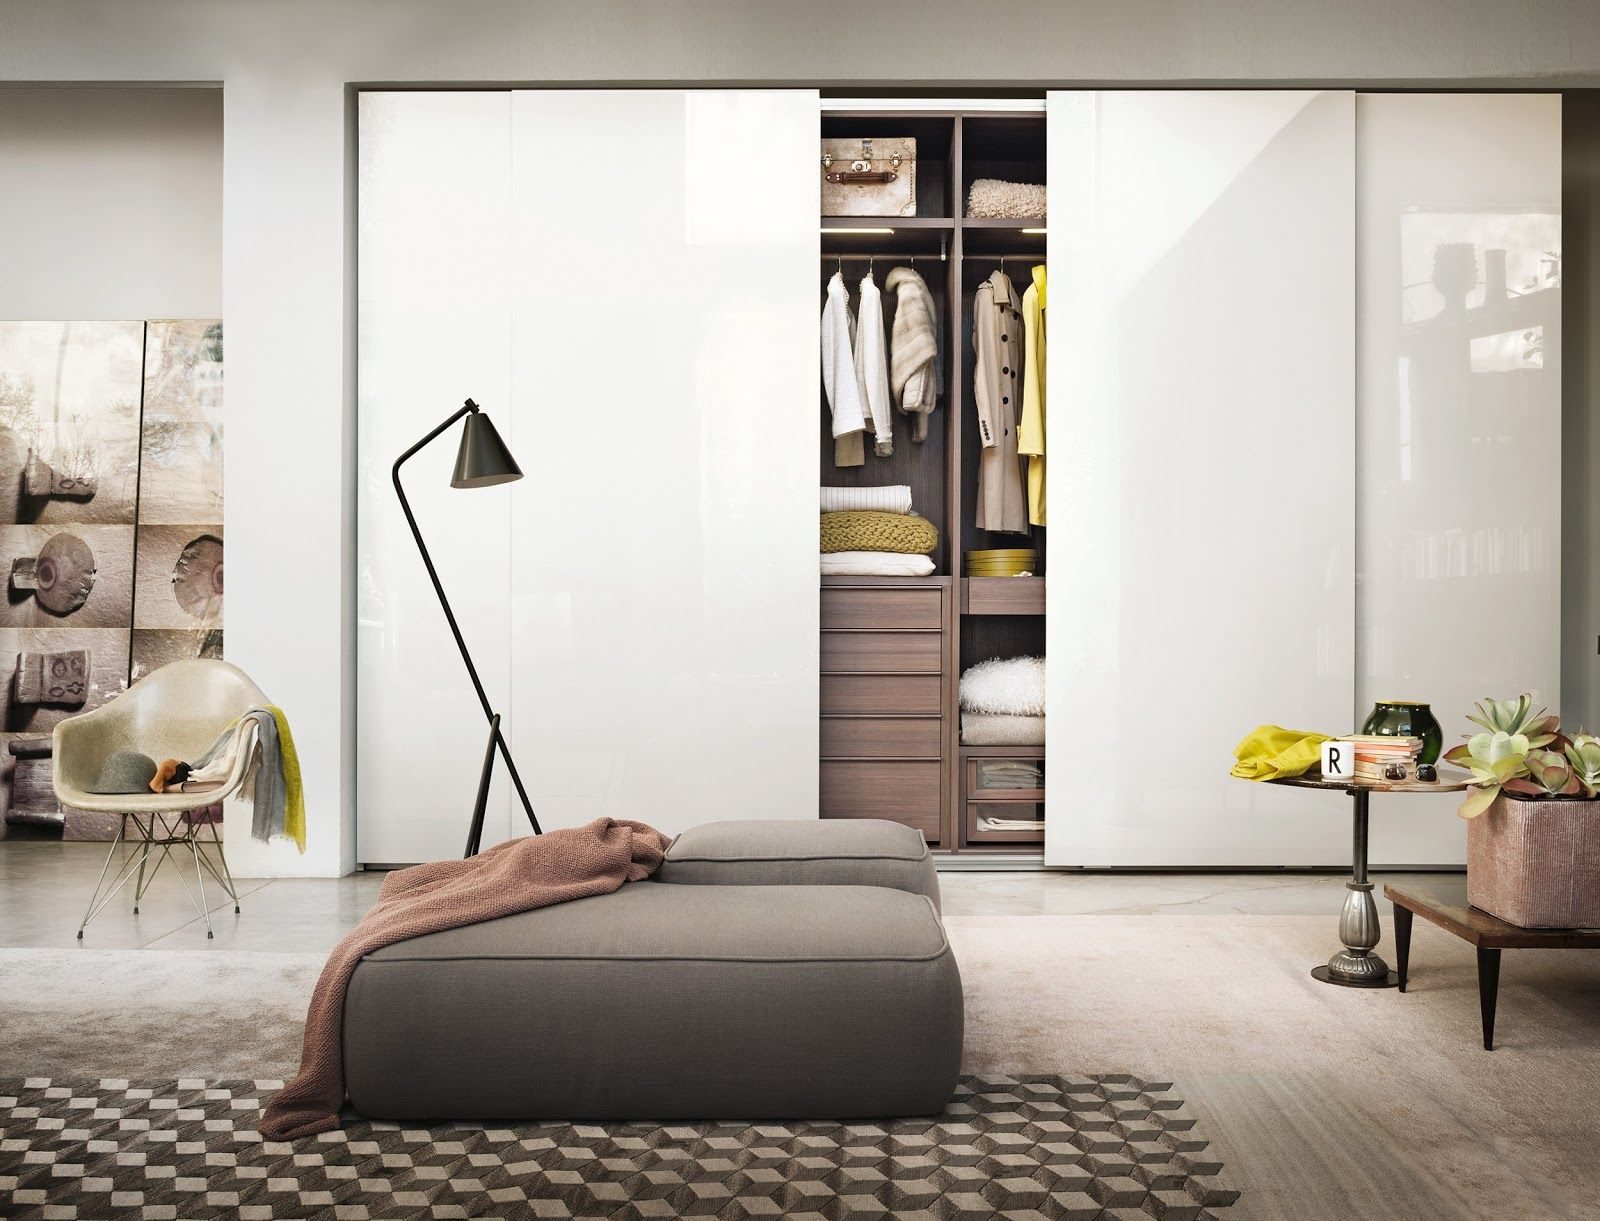 lemau0027s wardrobe with glossy lacquer sliding doors with internal equipment that can be outfitted to